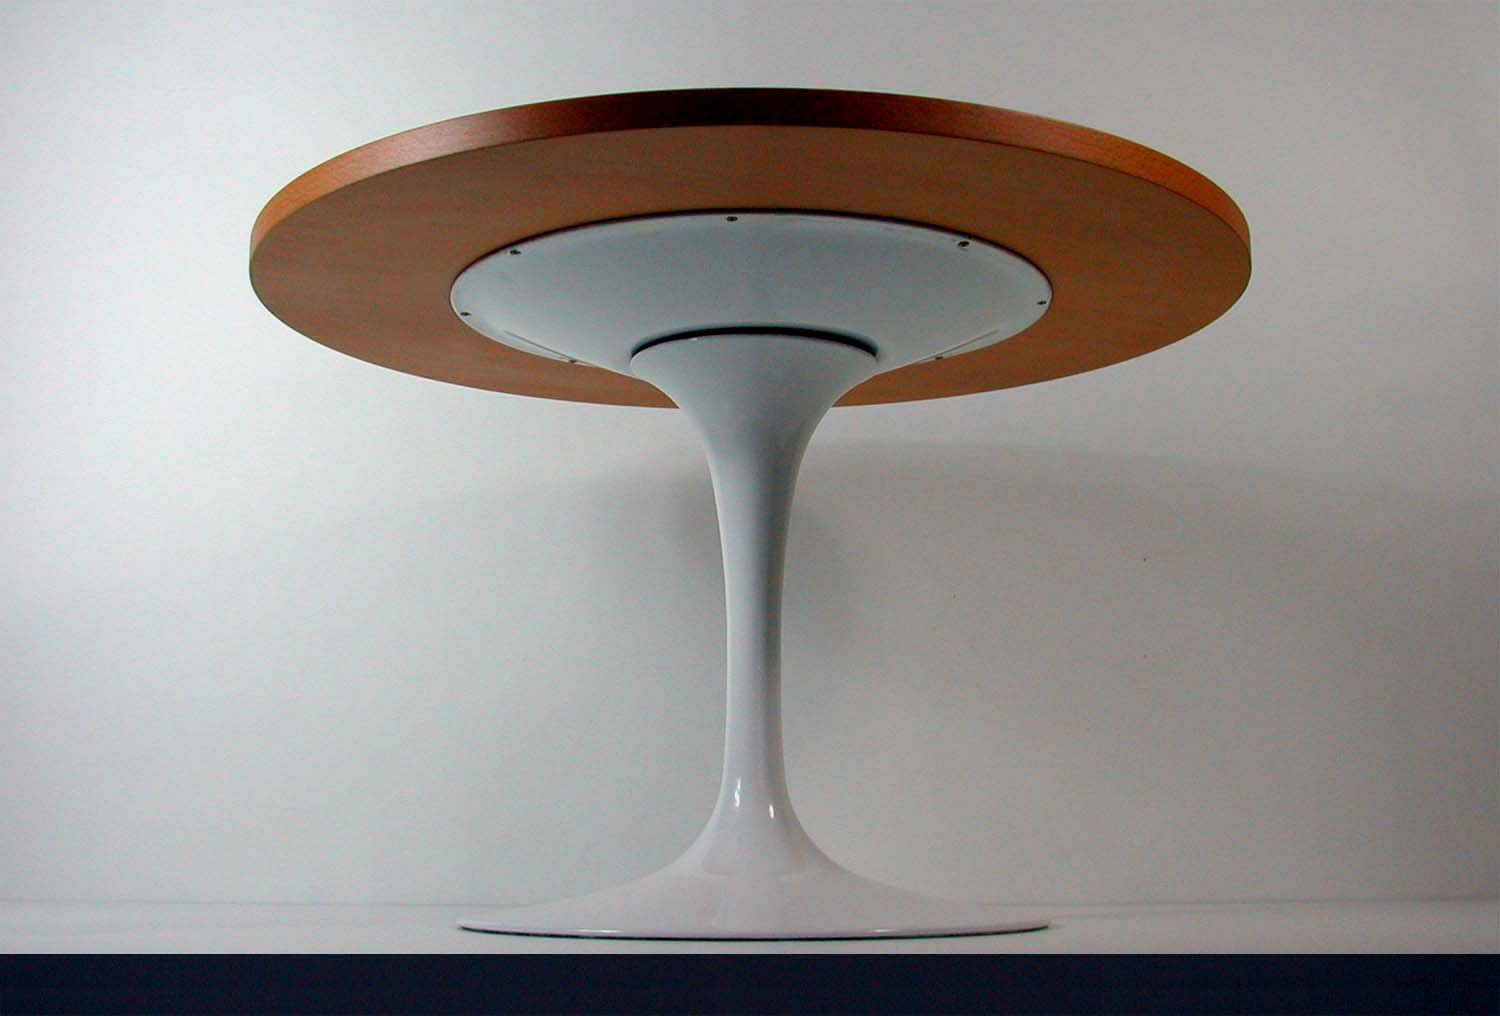 tulip base lazy susan coffee table by eero saarinen for knoll for